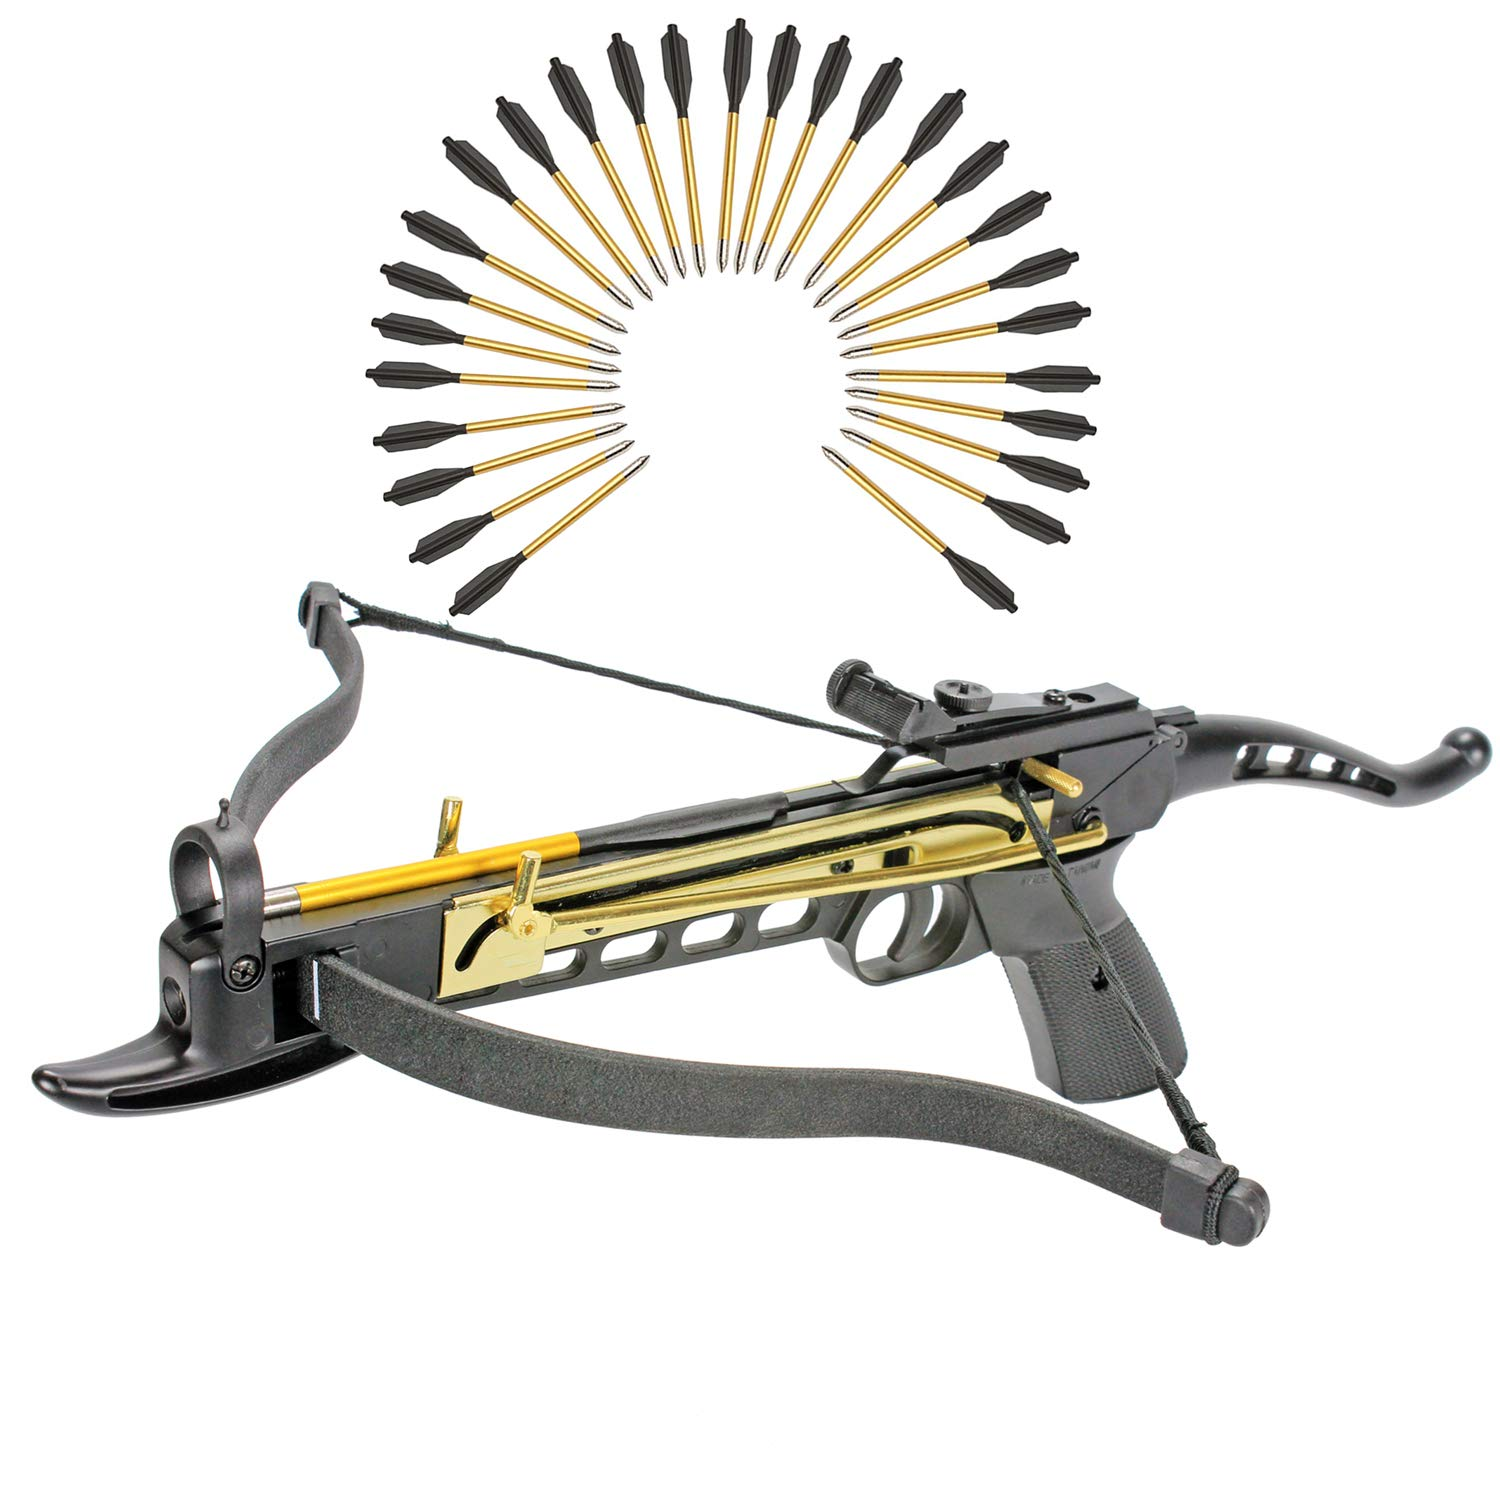 KingsArchery Crossbow Self-Cocking 80 LBS with Adjustable Sights and a Total of 27 Aluminim Arrow Bolt Set Warranty